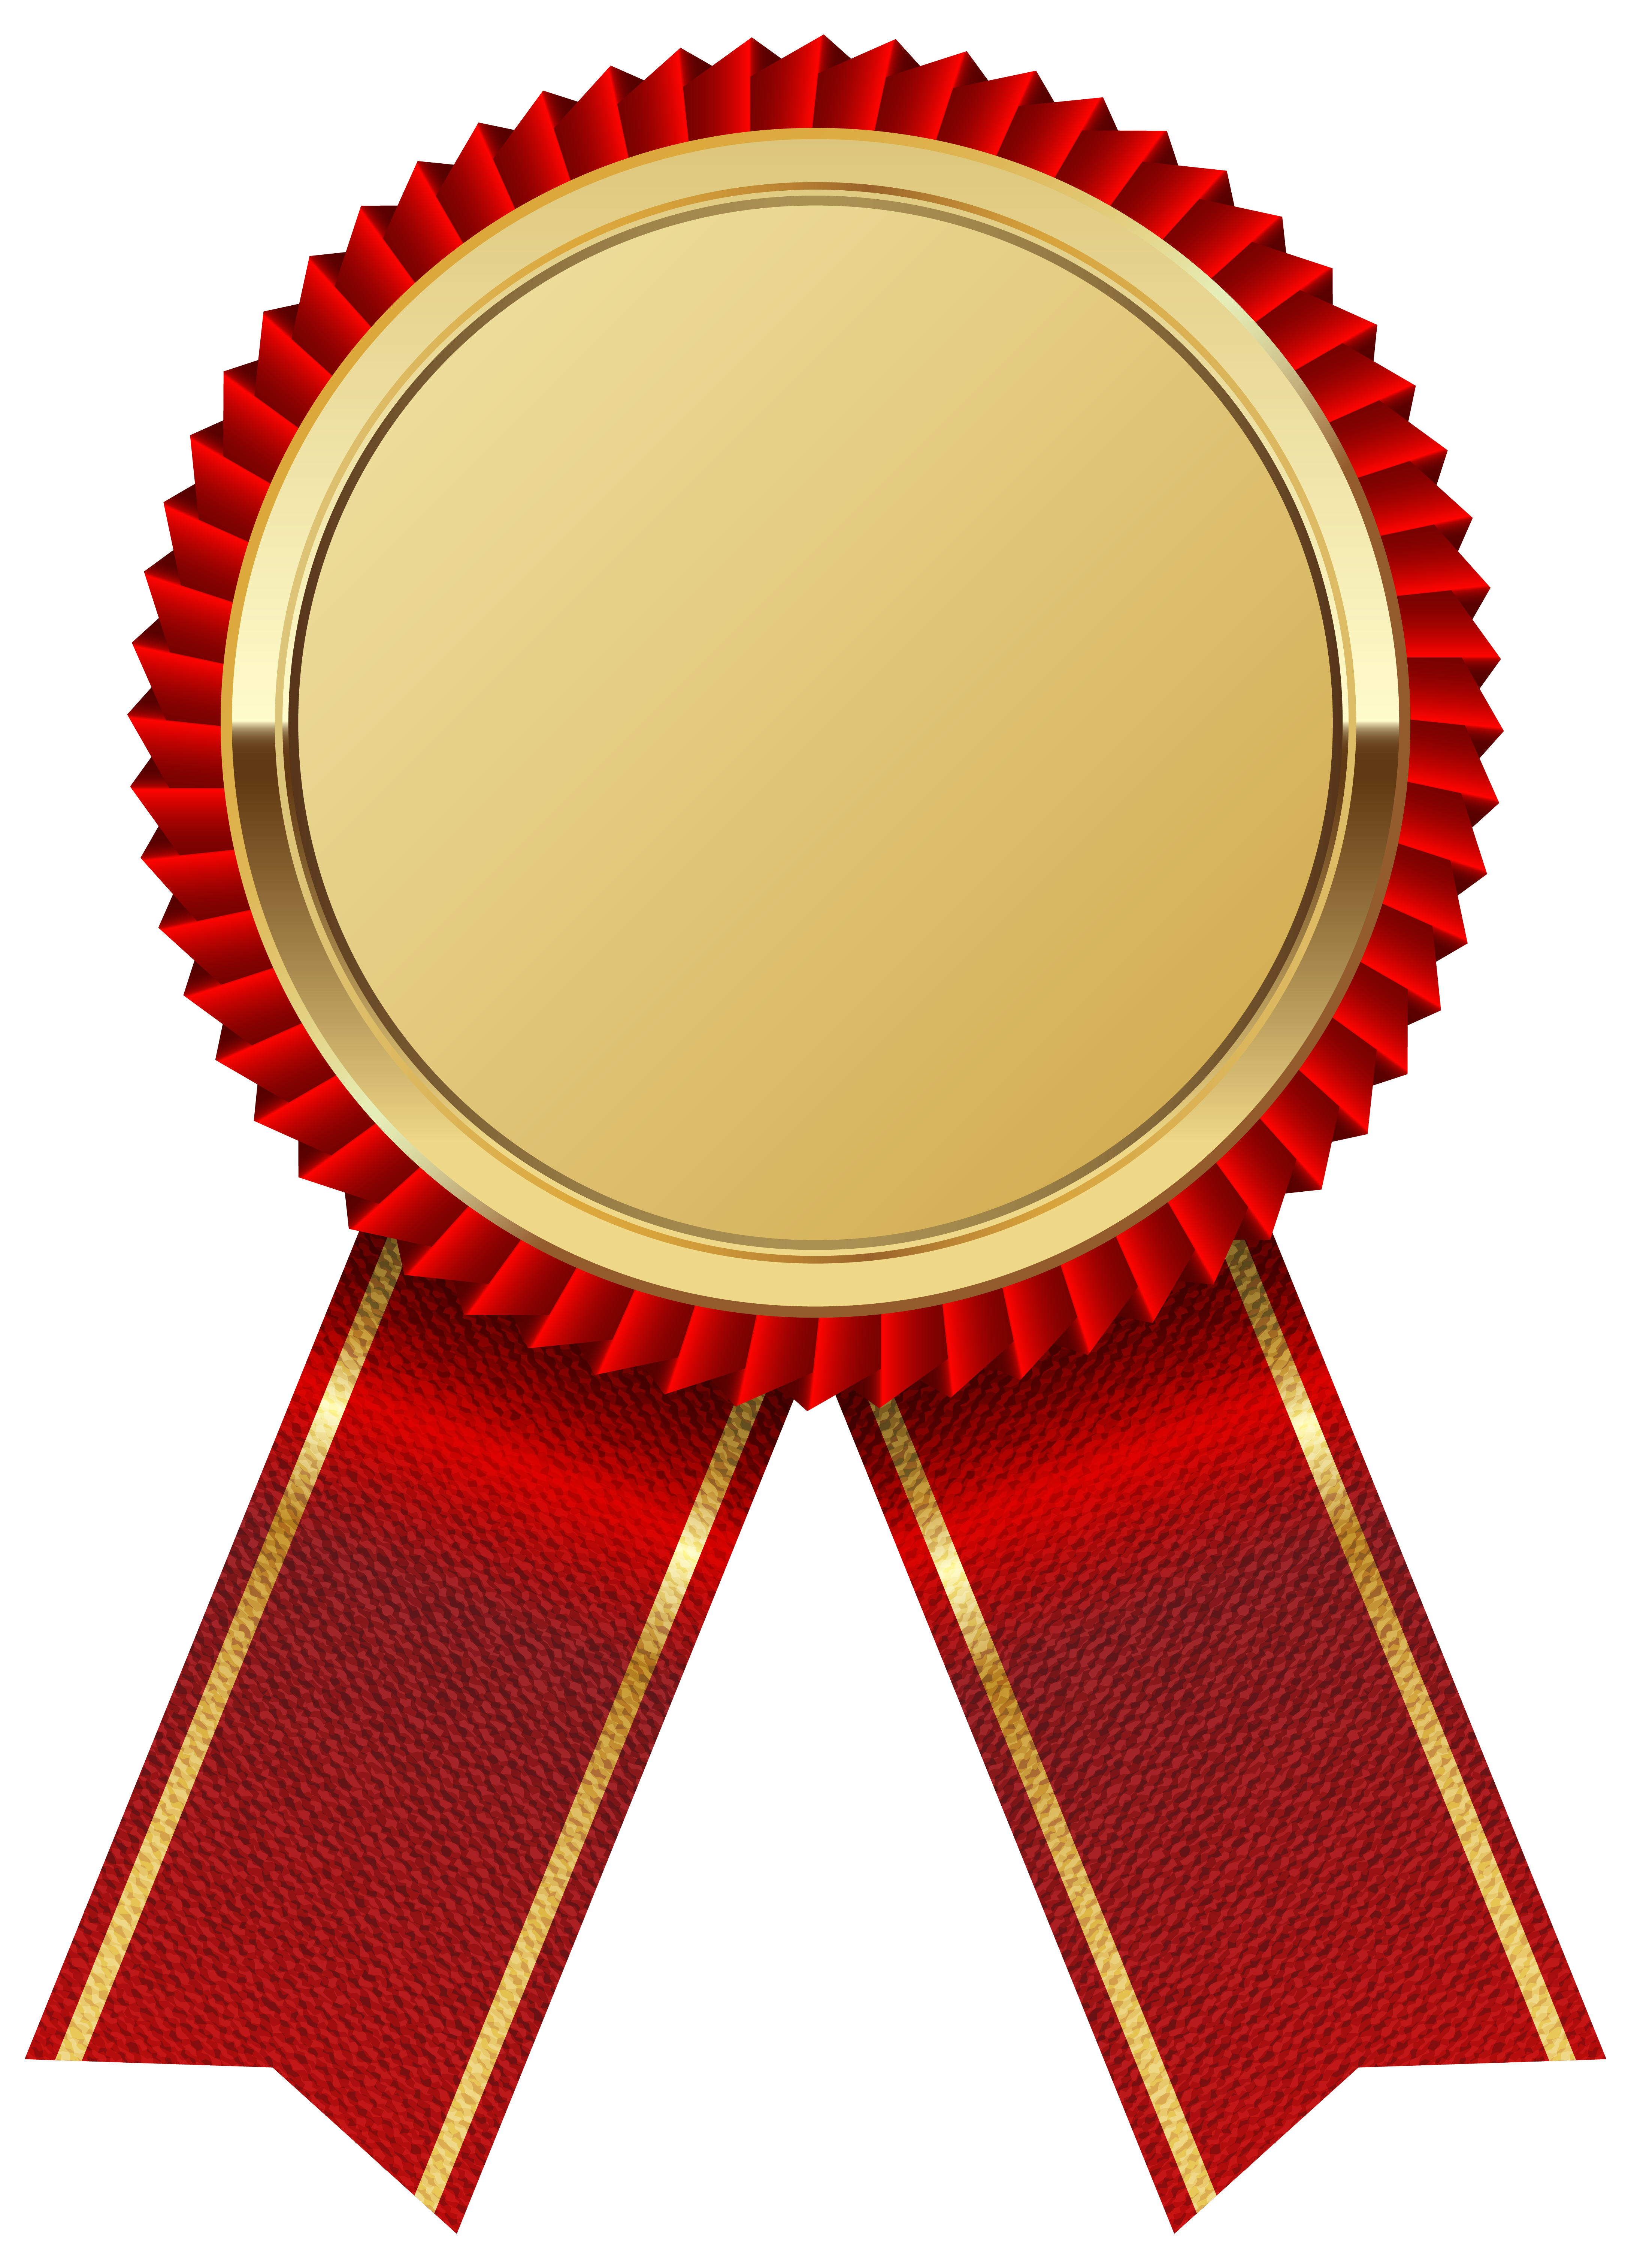 Gold Medal with Red Ribbon PNG Clipart I-Gold Medal with Red Ribbon PNG Clipart Image-5